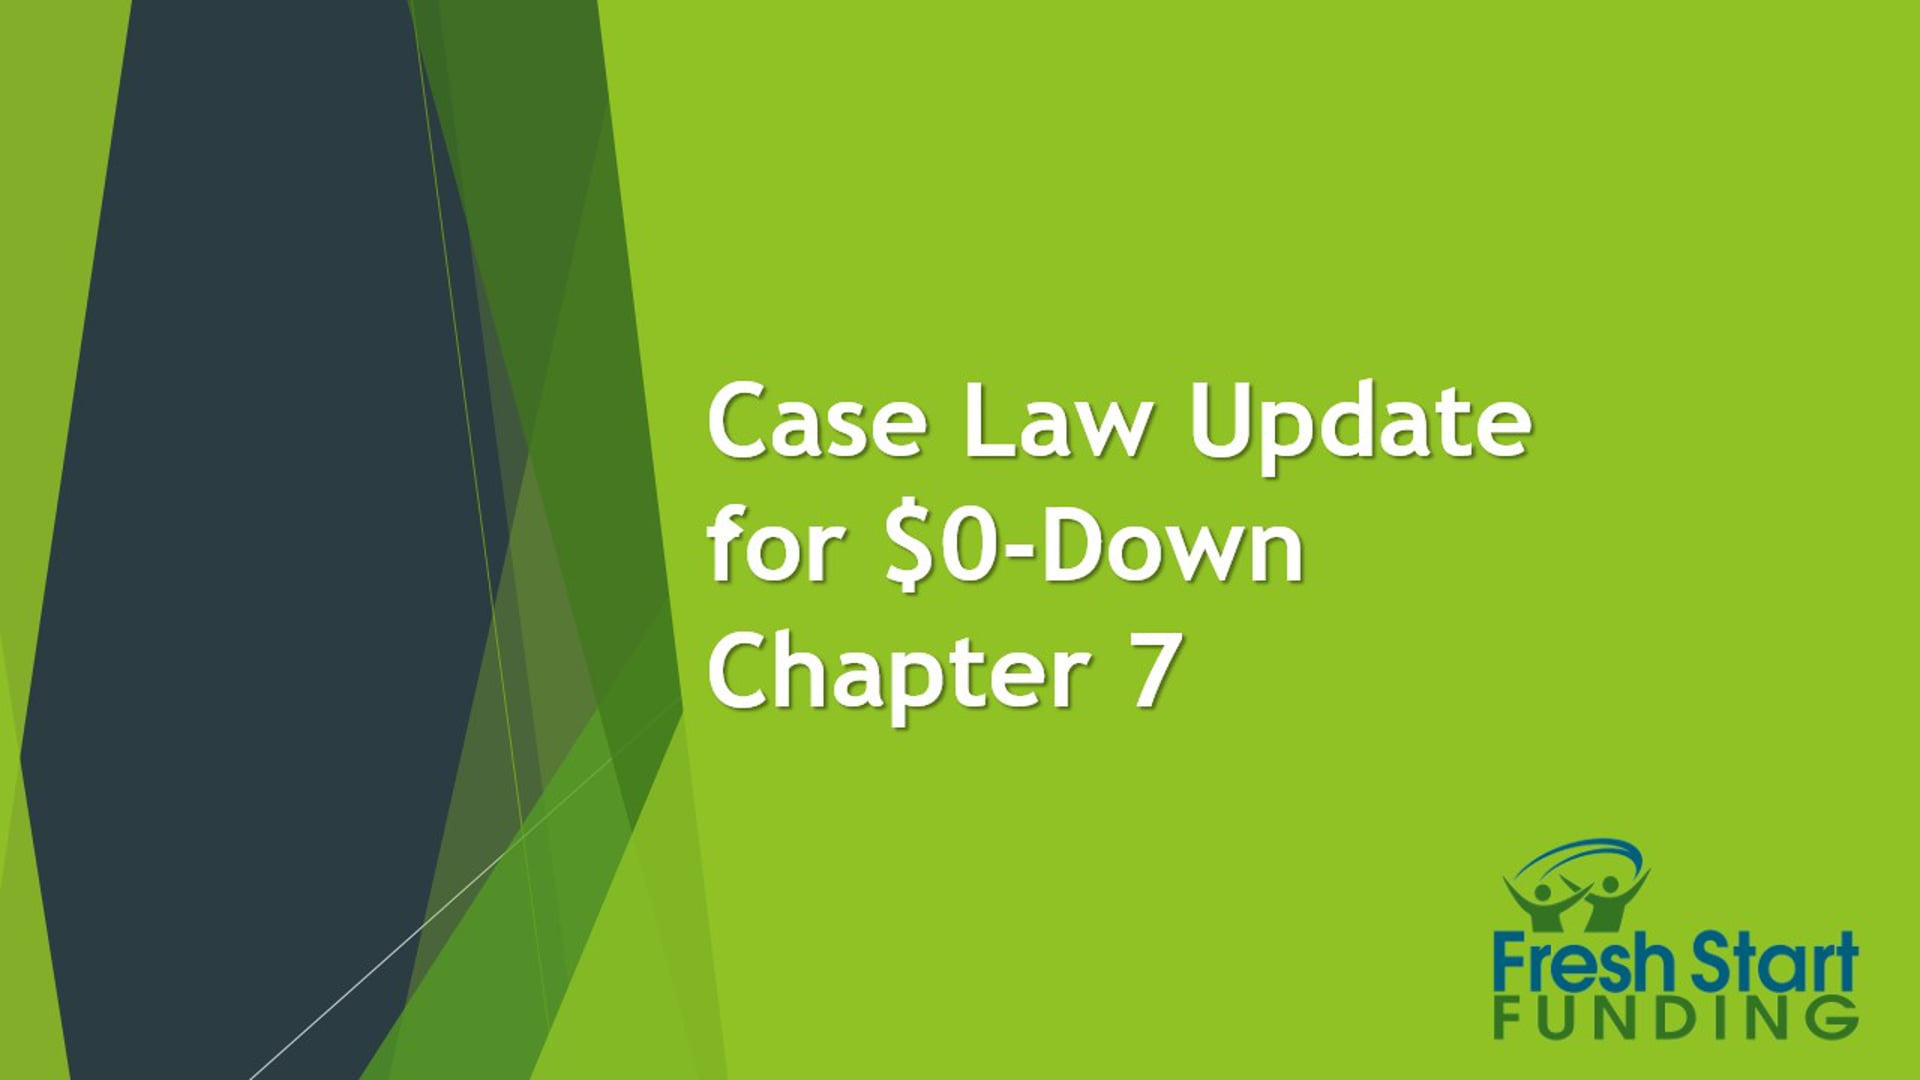 Case Law Update for $0-Down Chapter 7